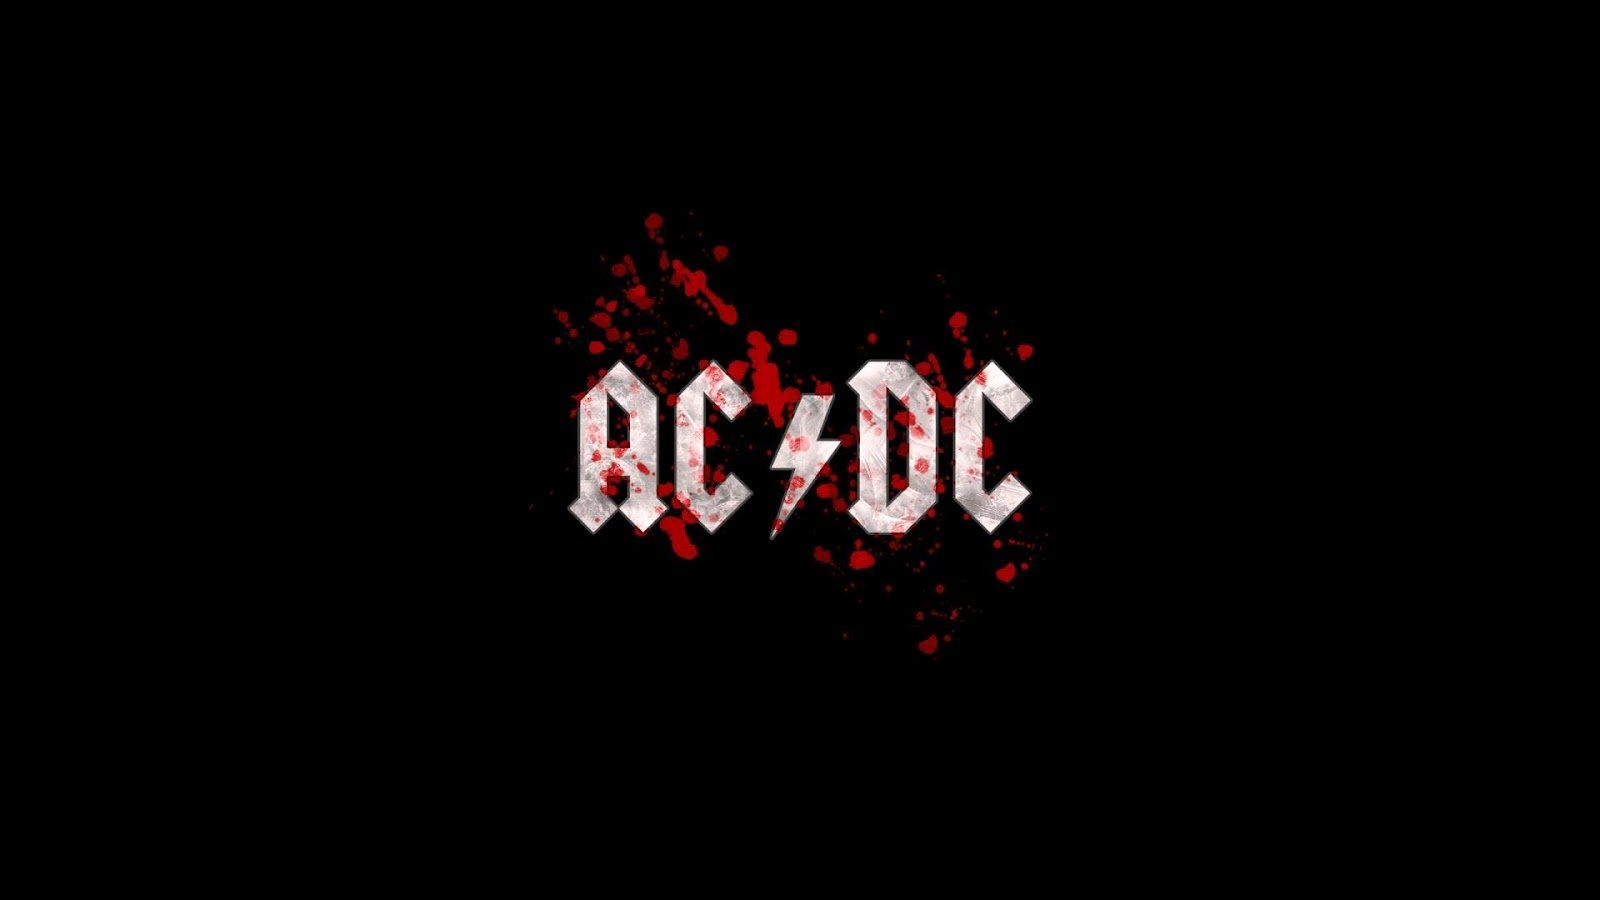 ACDCwallpapers8 AC DC Wallpapers in HD 1600x900